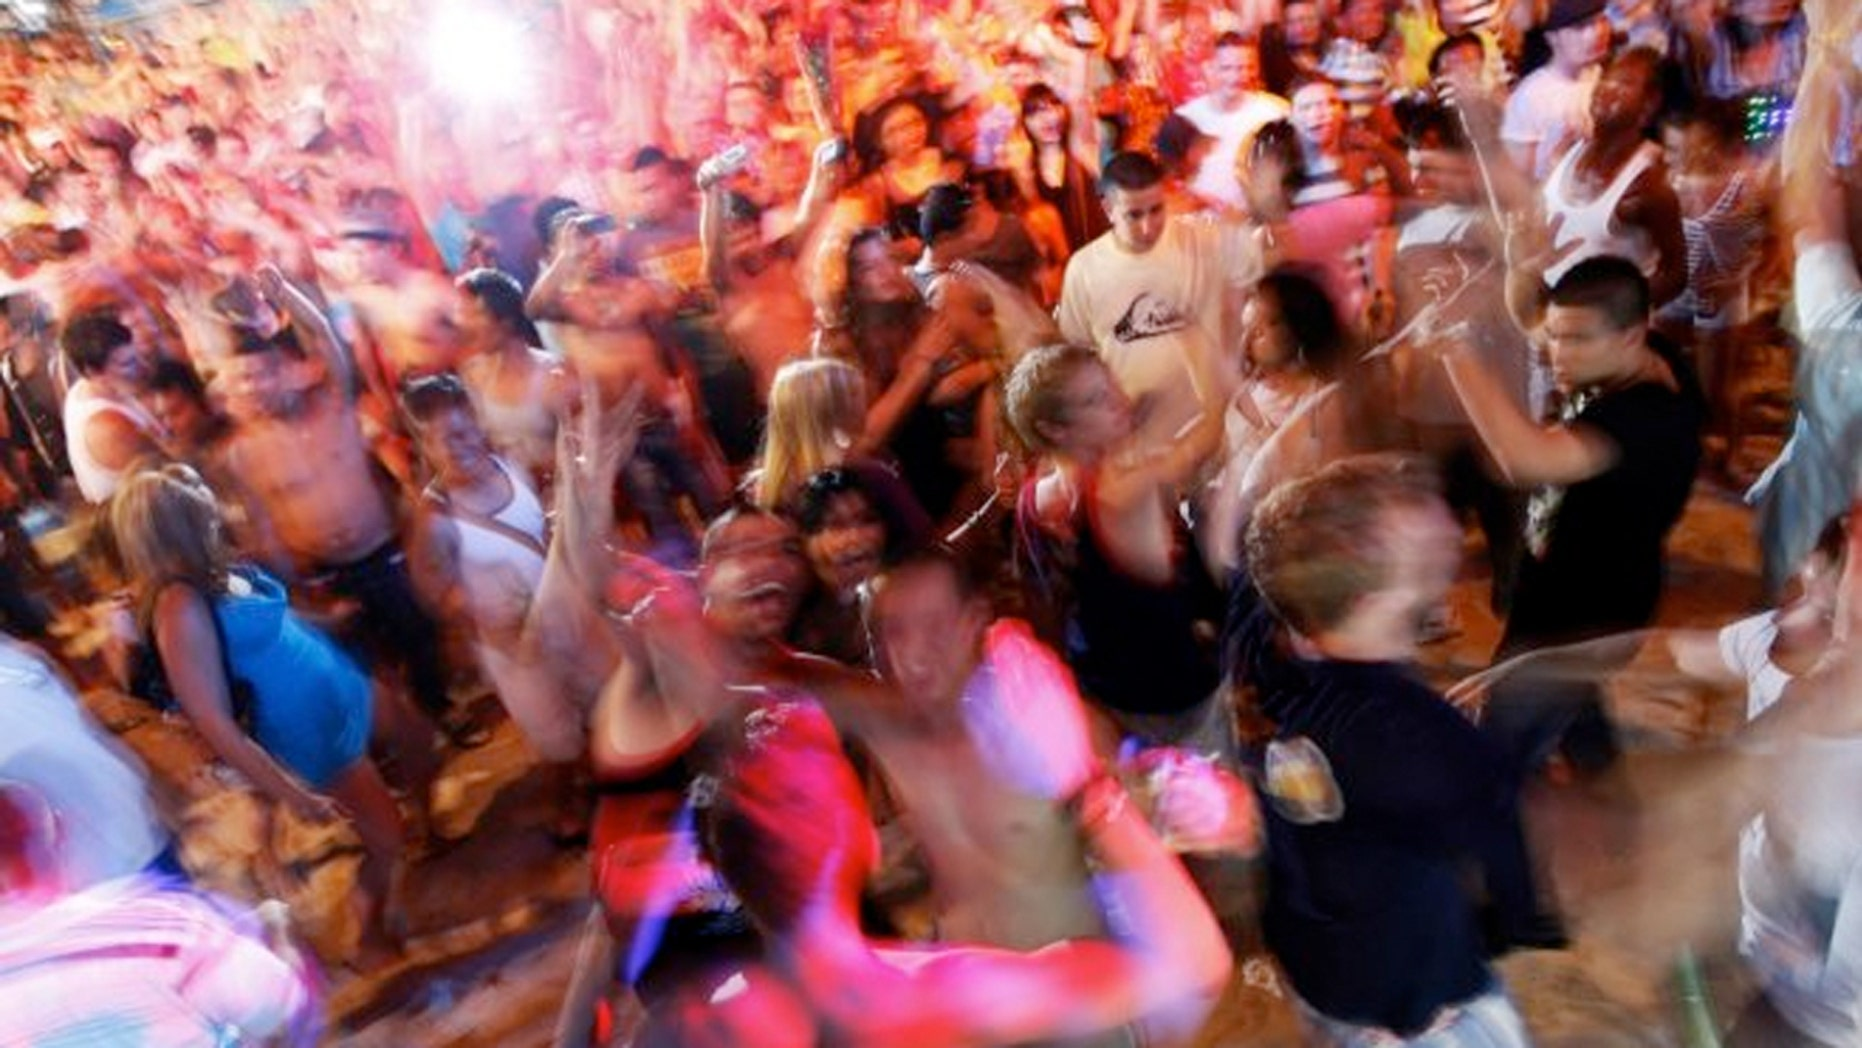 Tourists dance to electronic music during an open-air party at Patong beach in Phuket, one of Asia's premier resort islands. (Reuters)